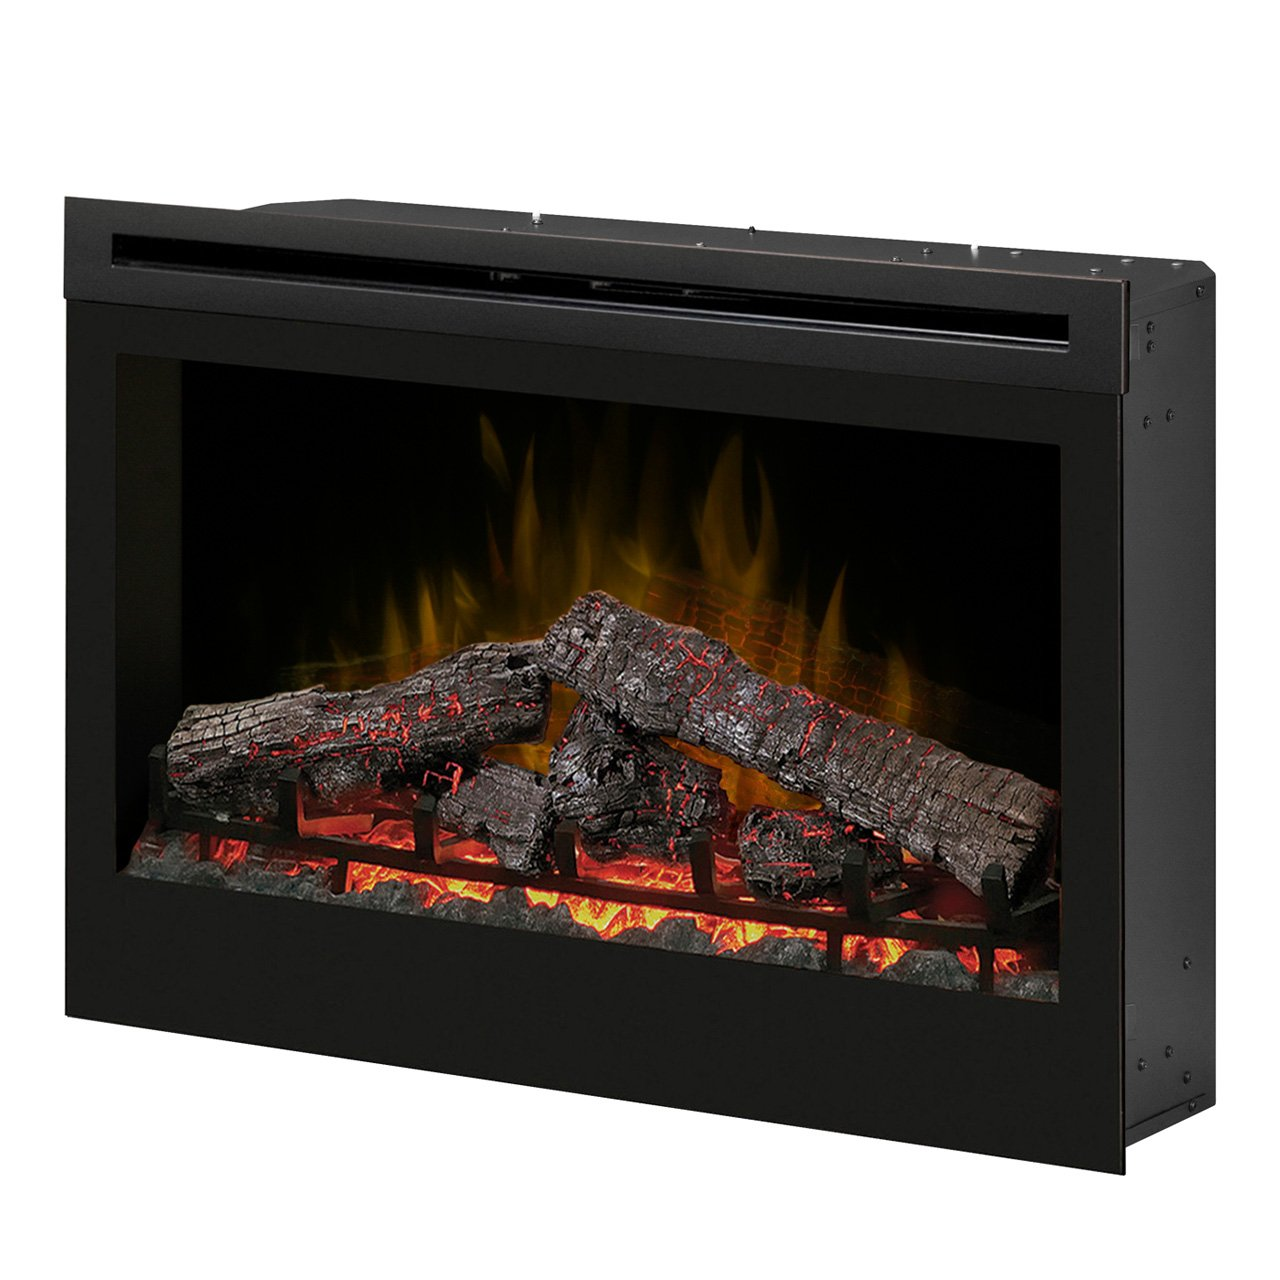 Fireplace Stores In My area Beautiful Dimplex Df3033st 33 Inch Self Trimming Electric Fireplace Insert